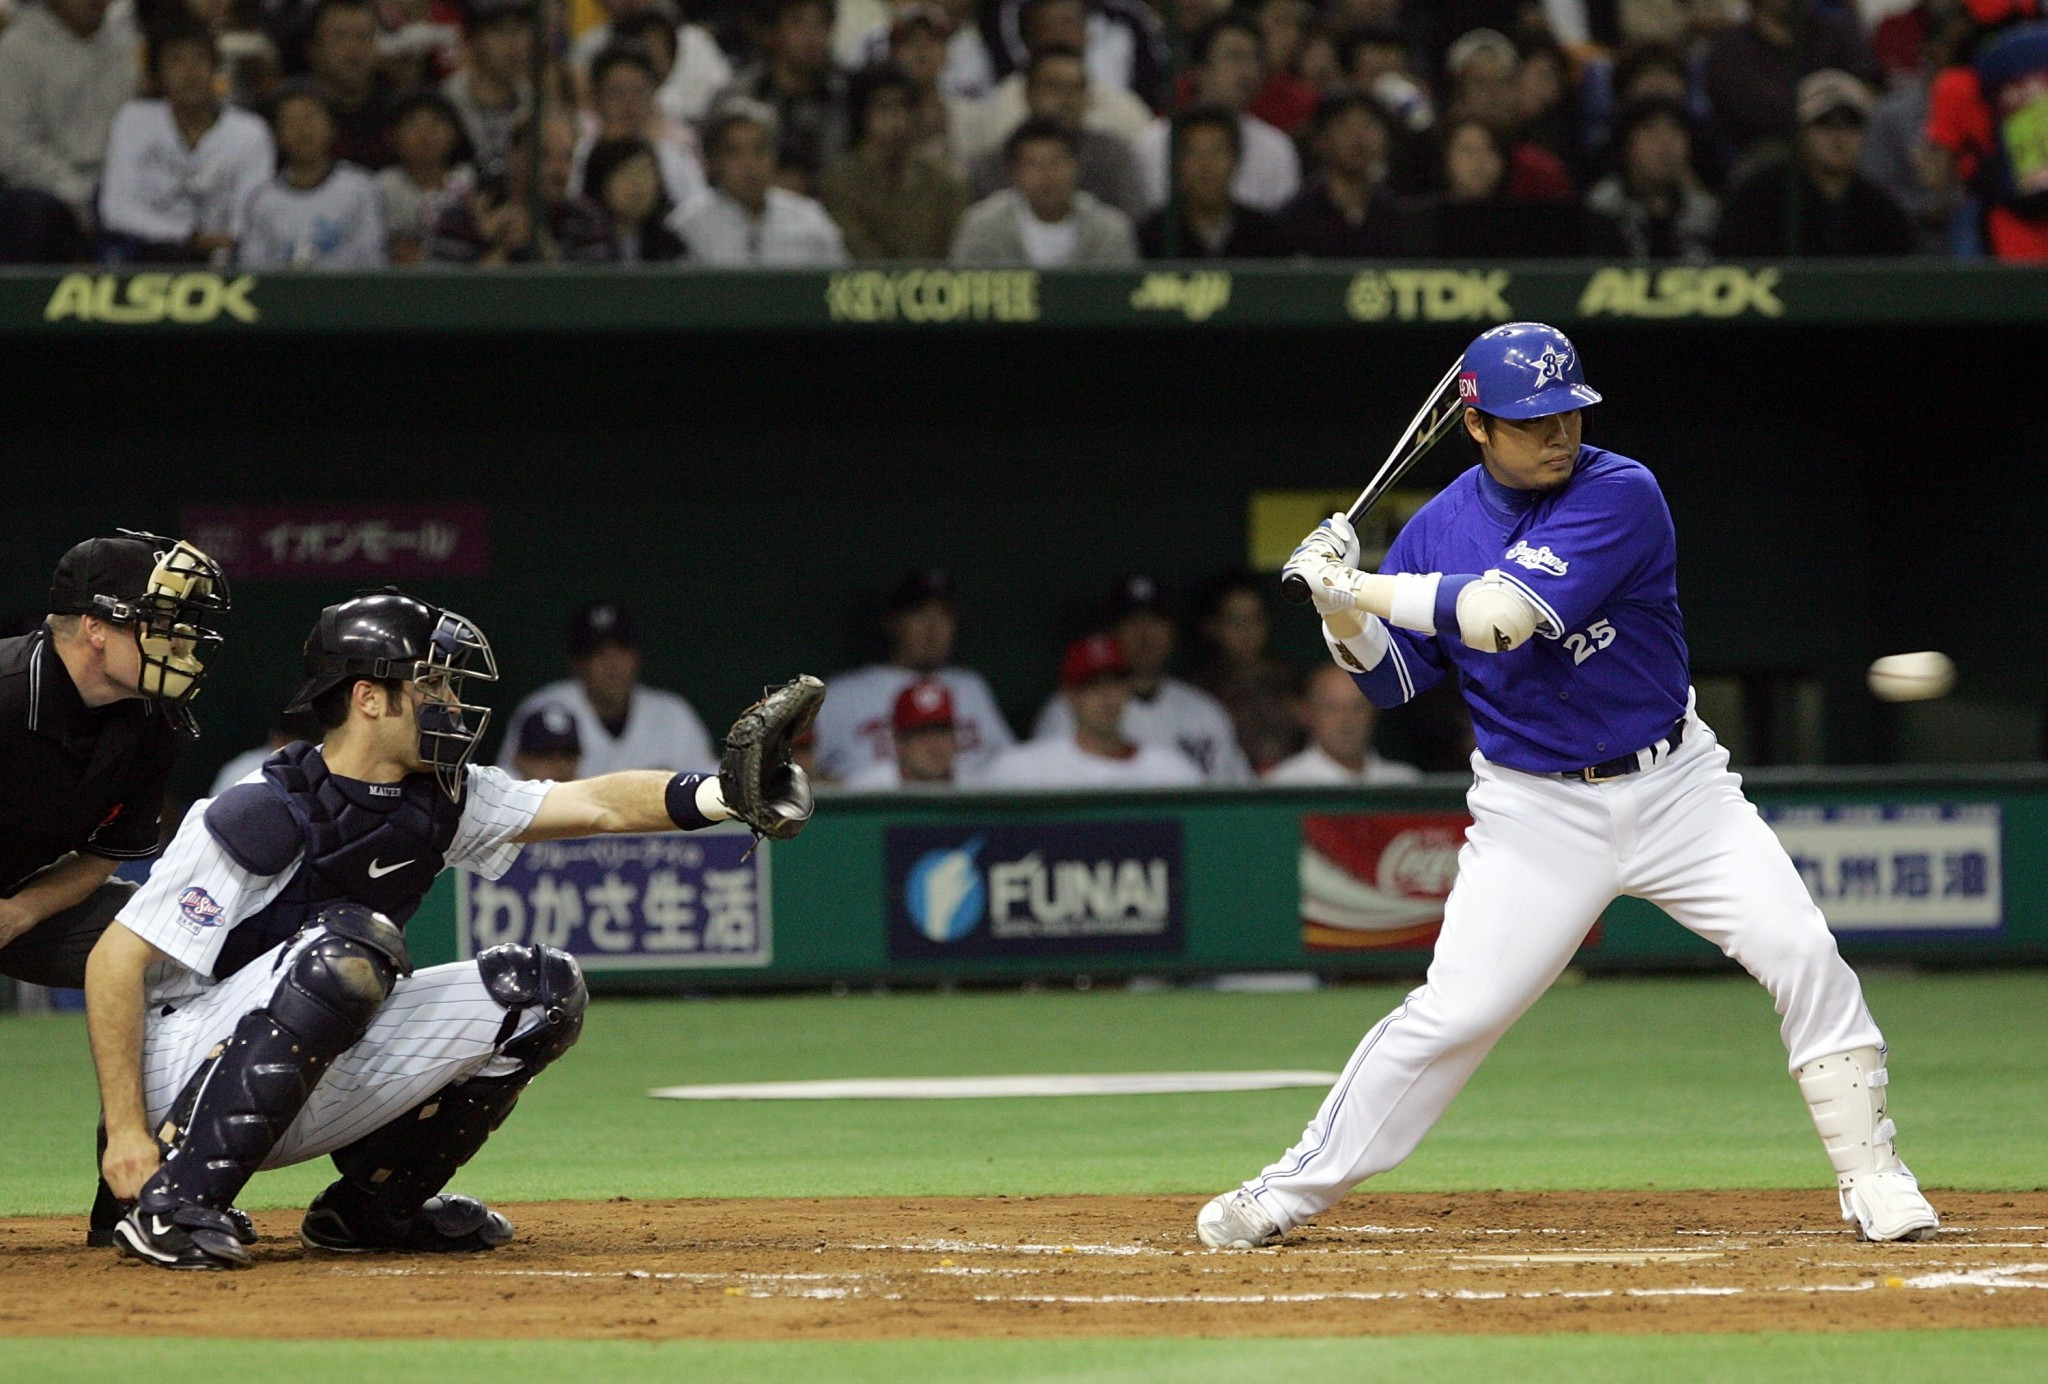 Tokyo 2020 keen to prioritise Major League Baseball deal over format demands